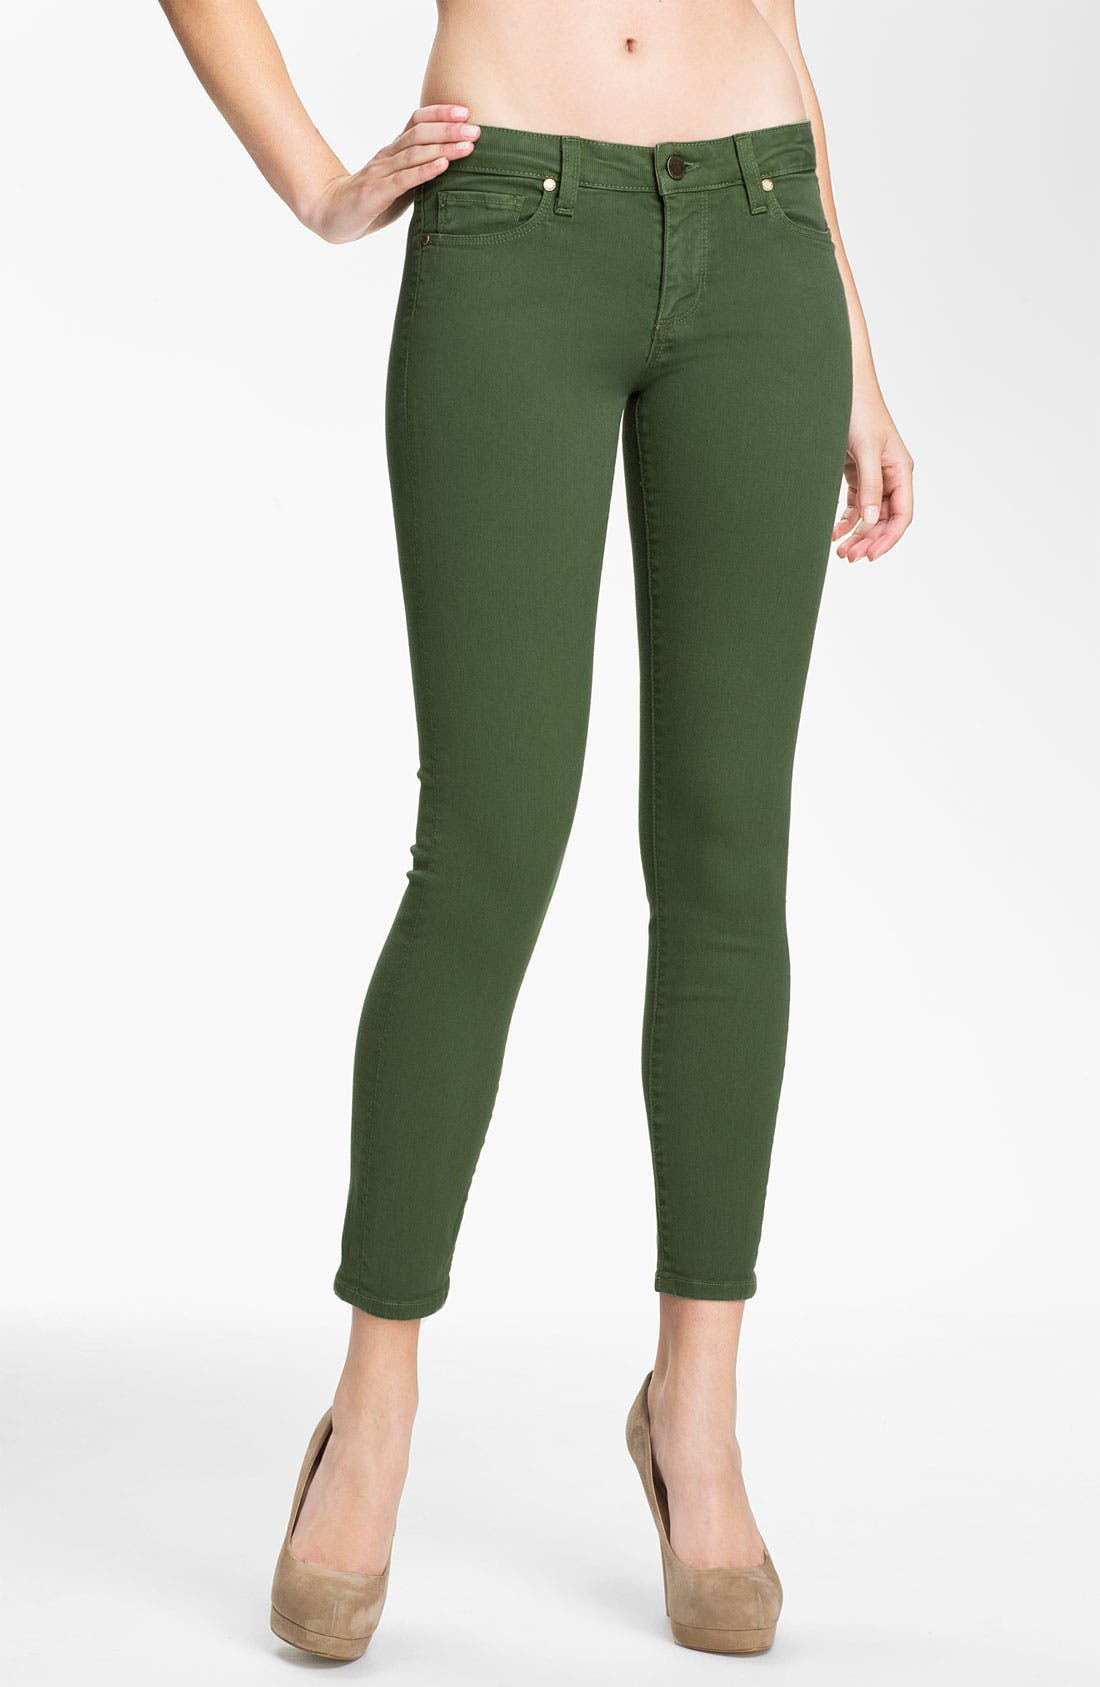 Alternate Image 1 Selected - Paige Denim 'Skyline' Ankle Peg Skinny Stretch Jeans (Forest)